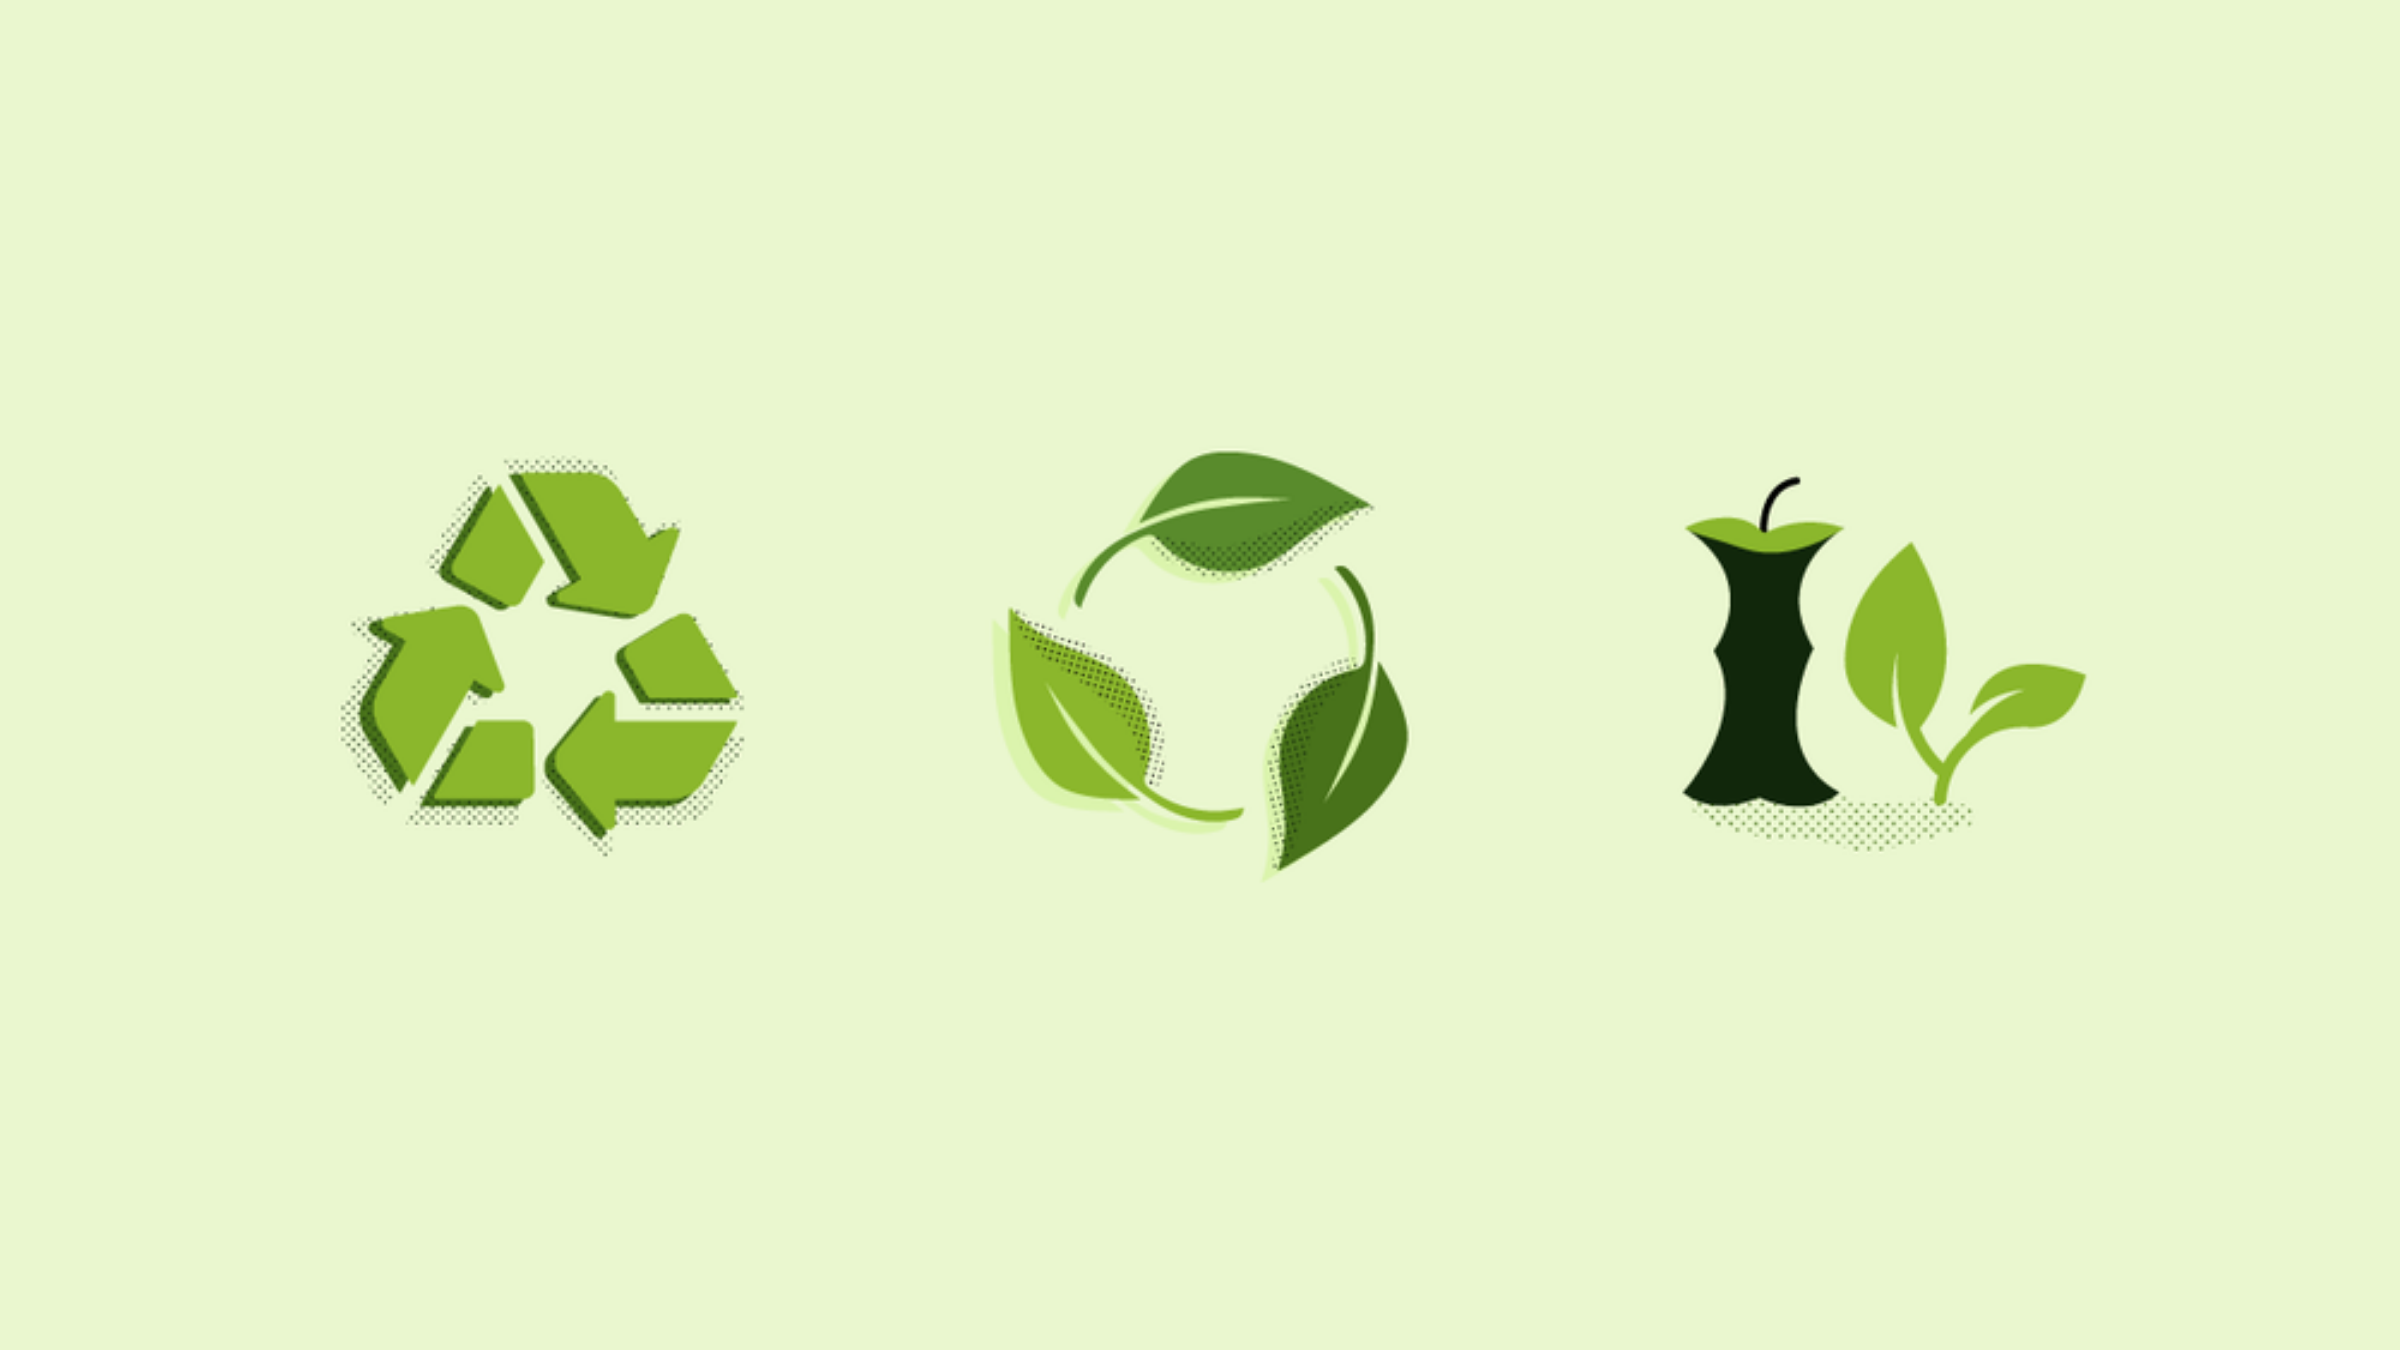 Difference between Composting, Biodegradability and Recyclability